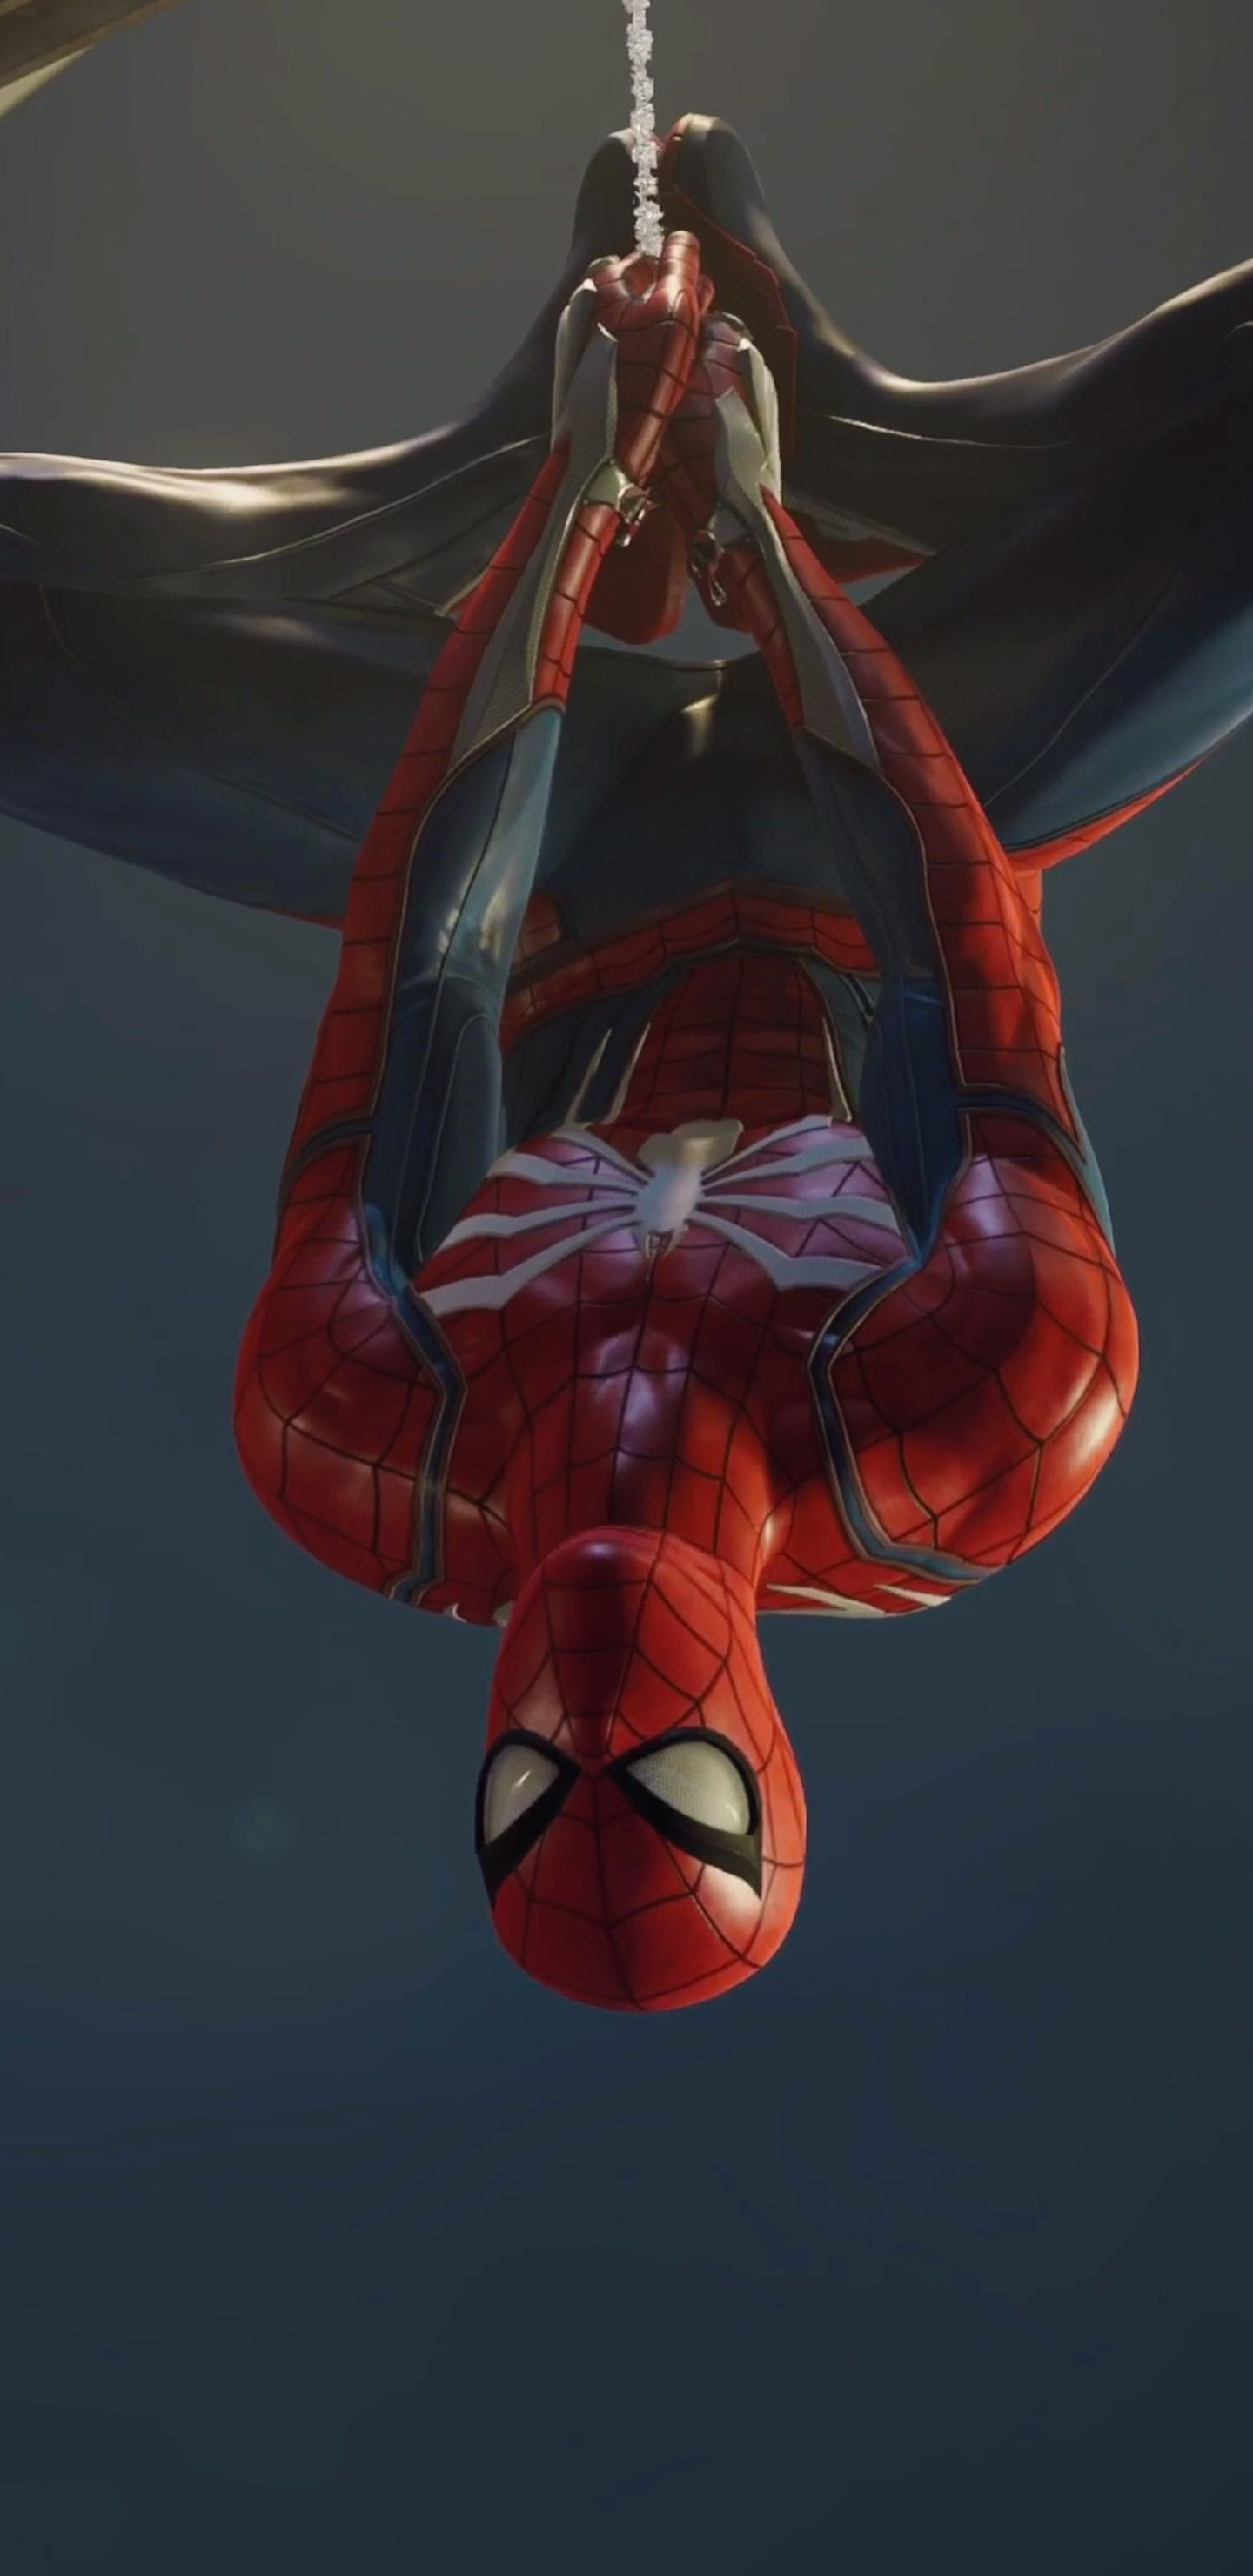 Spider-Man PlayStation 4 Wallpapers - Top Free Spider-Man ...